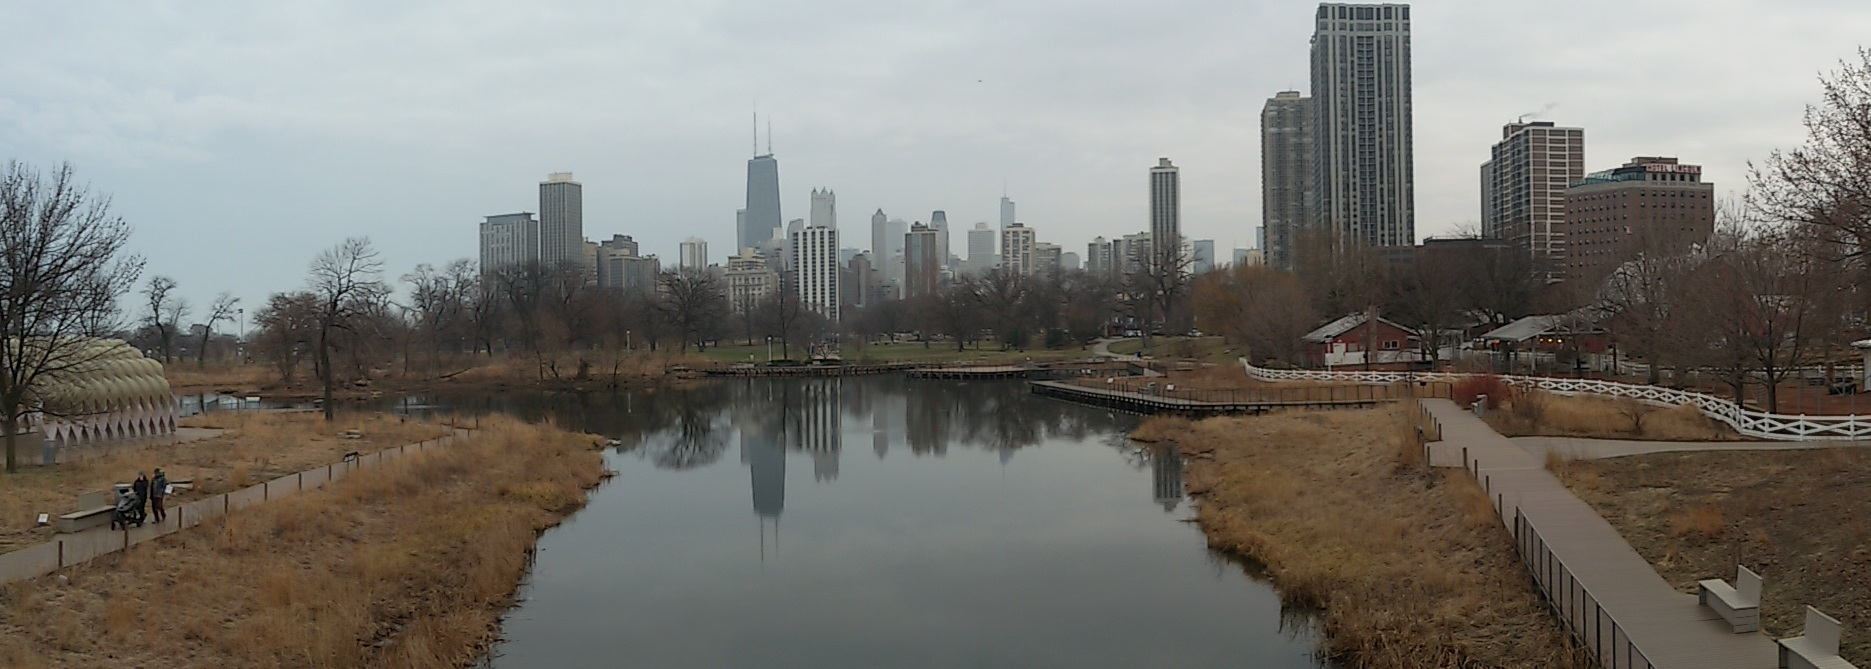 Chicago (skyline)